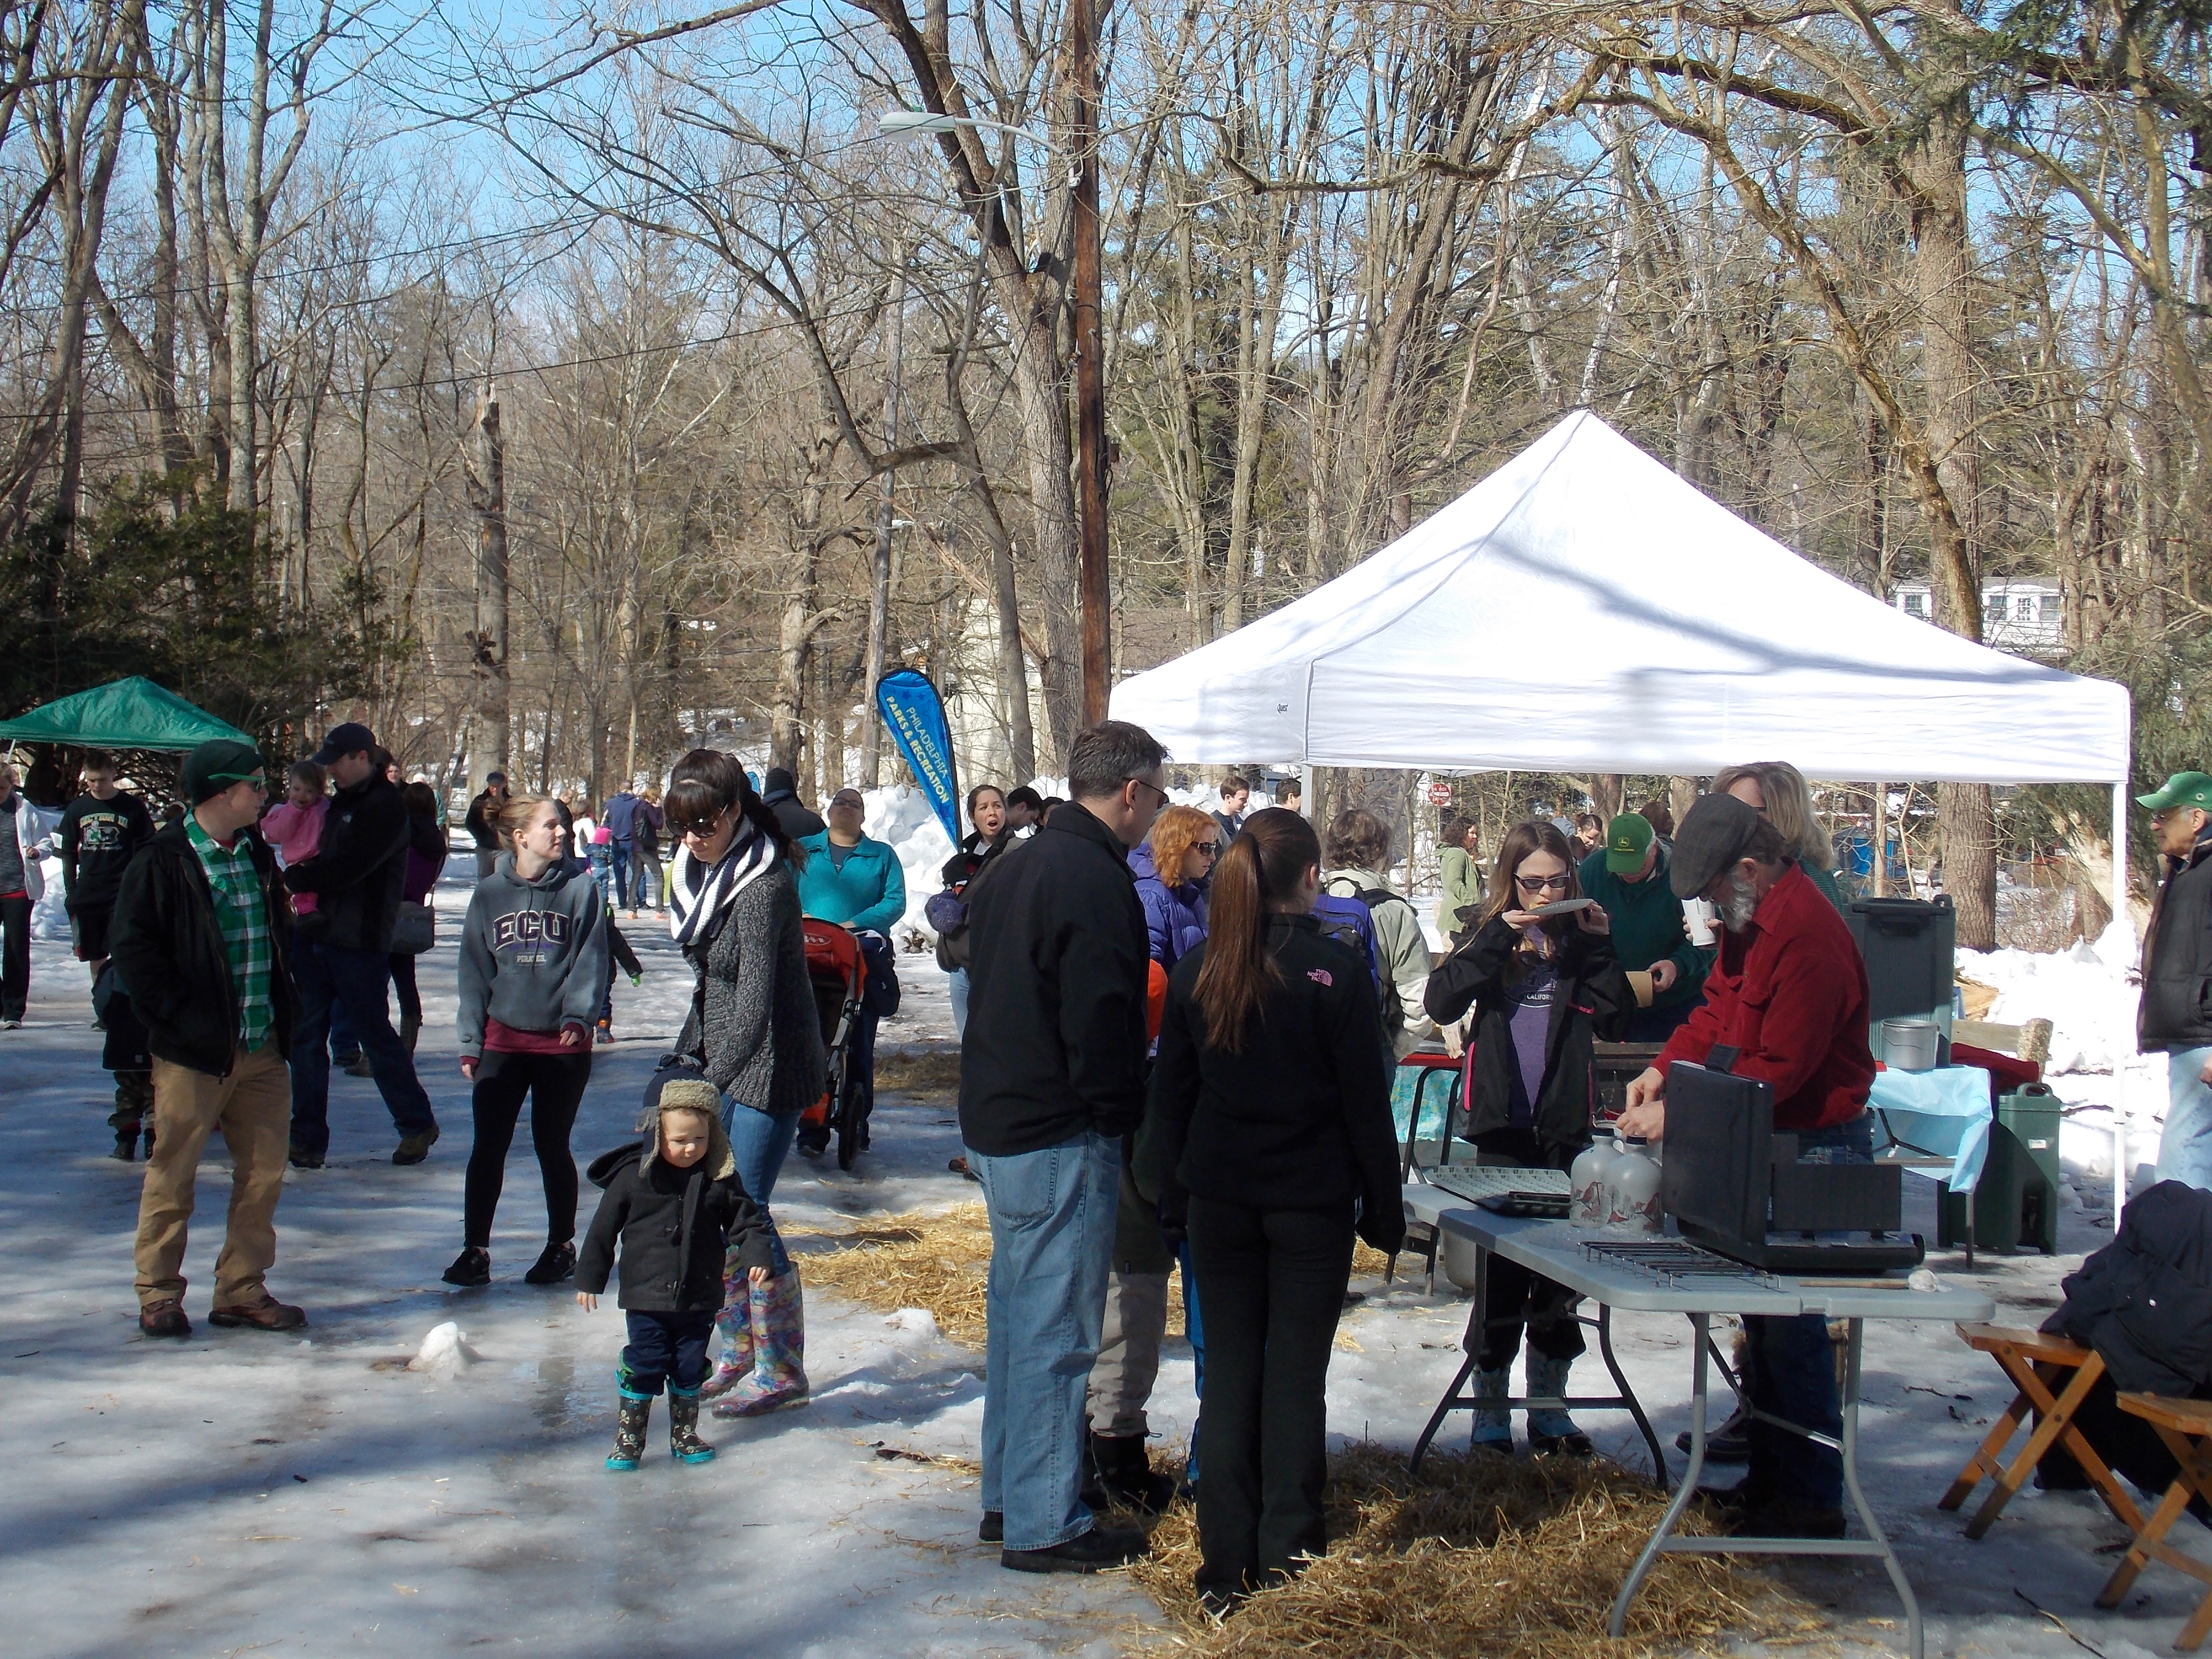 Crowds gather at Maple Sugar Day despite the snow and Ice.